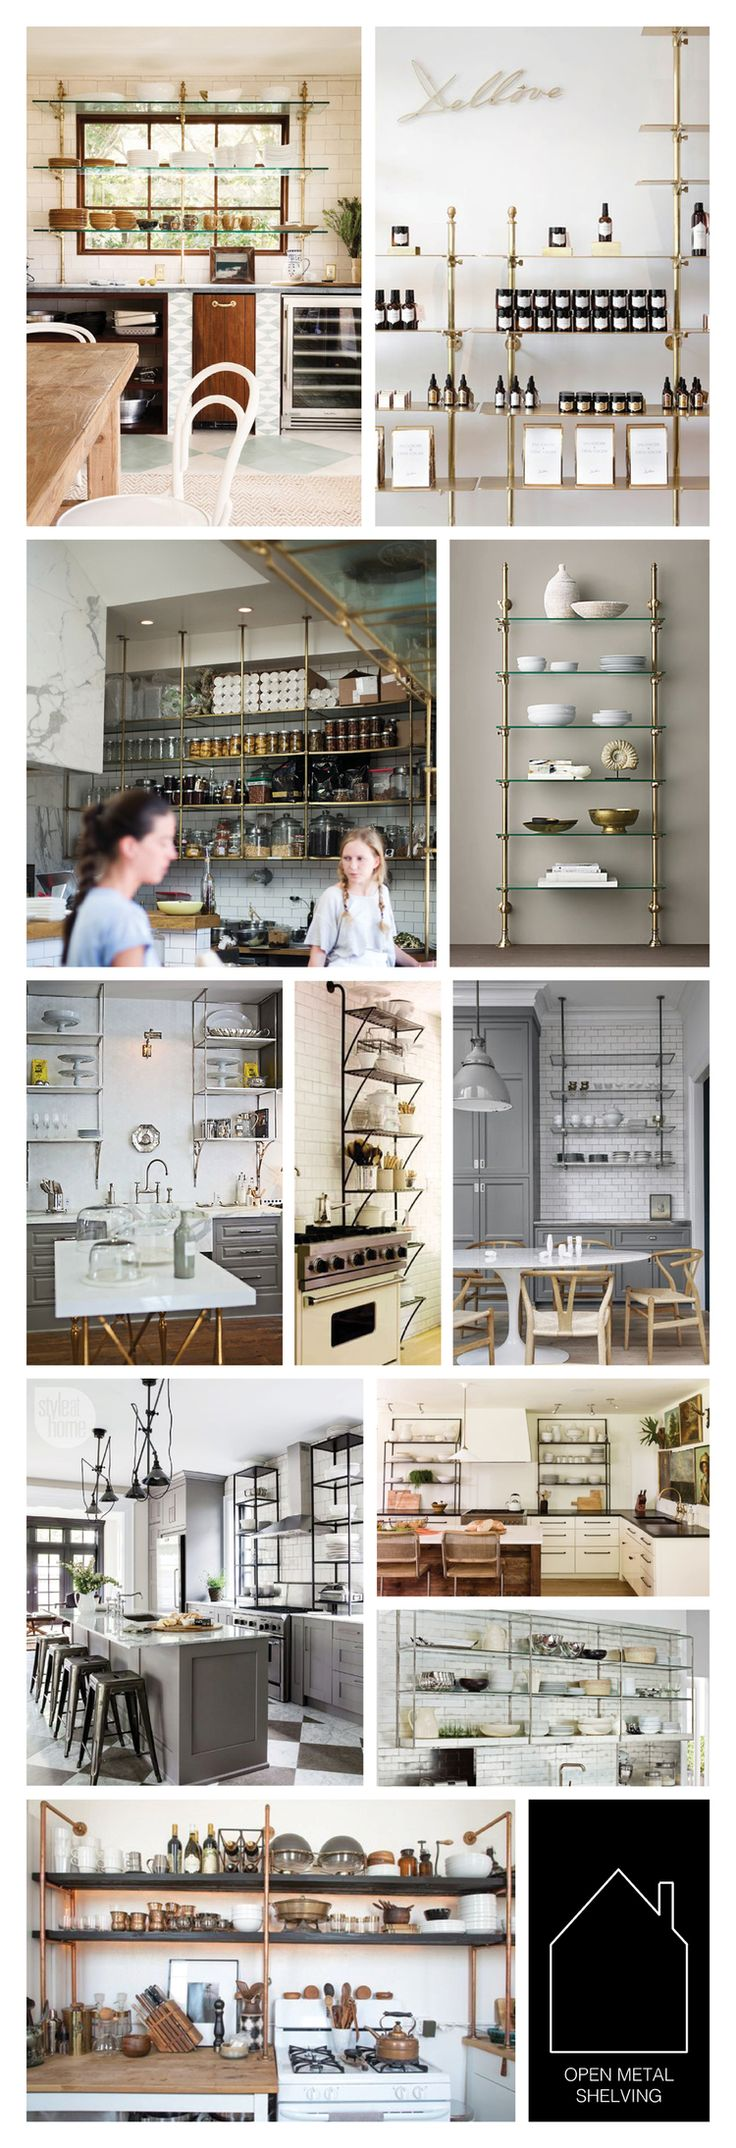 from top left - Hawaiian vacation home designed by Michelle R. Smith via DOMAINE - retail brass shelving via source unknown - commercial brass shelving via DISC JOURNAL - 1930s French Bistro Shelving via Restoration Hardware- LA home of Gwyneth Paltrow via Popsugar - full height iron shelving via COCO COZY - home of Susan Greenleaf via Lonny- industrial kitchen design by Ingrid Oomen via Style At Home - home of Lauren Liess - 2012 Kitchen of the Year via House Beautiful - DIY copper…